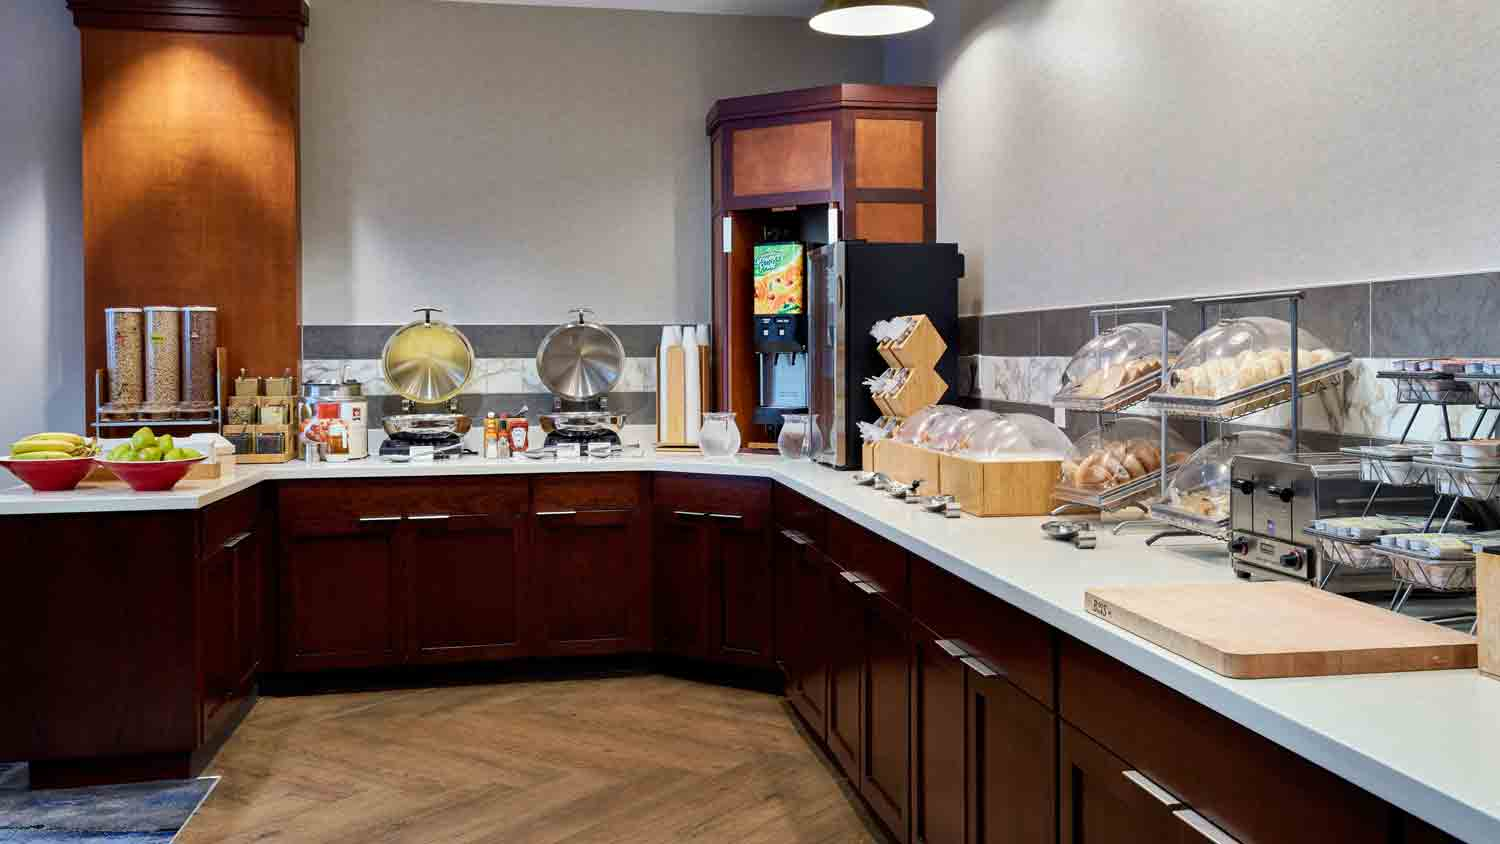 Fairfield Inn & Suites by Marriott Downtown Indianapolis 8